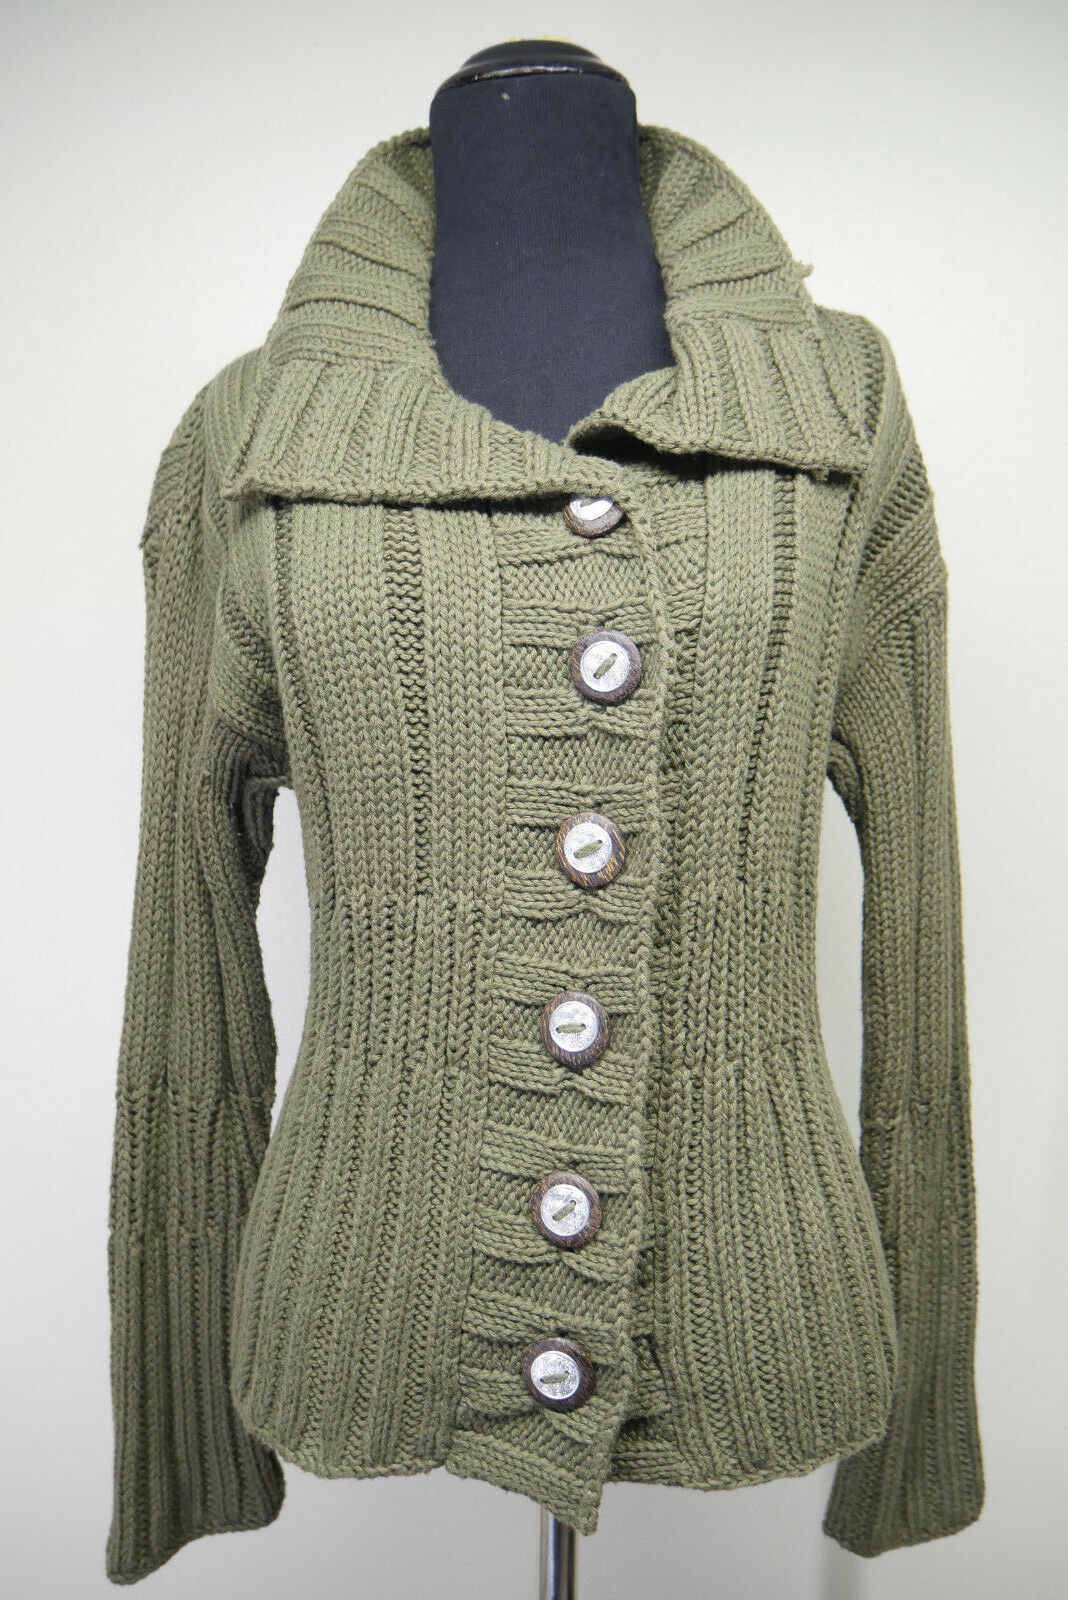 Pure Handknit Anthropologie 100% Cotton Rib Olive Sweater Sz S M